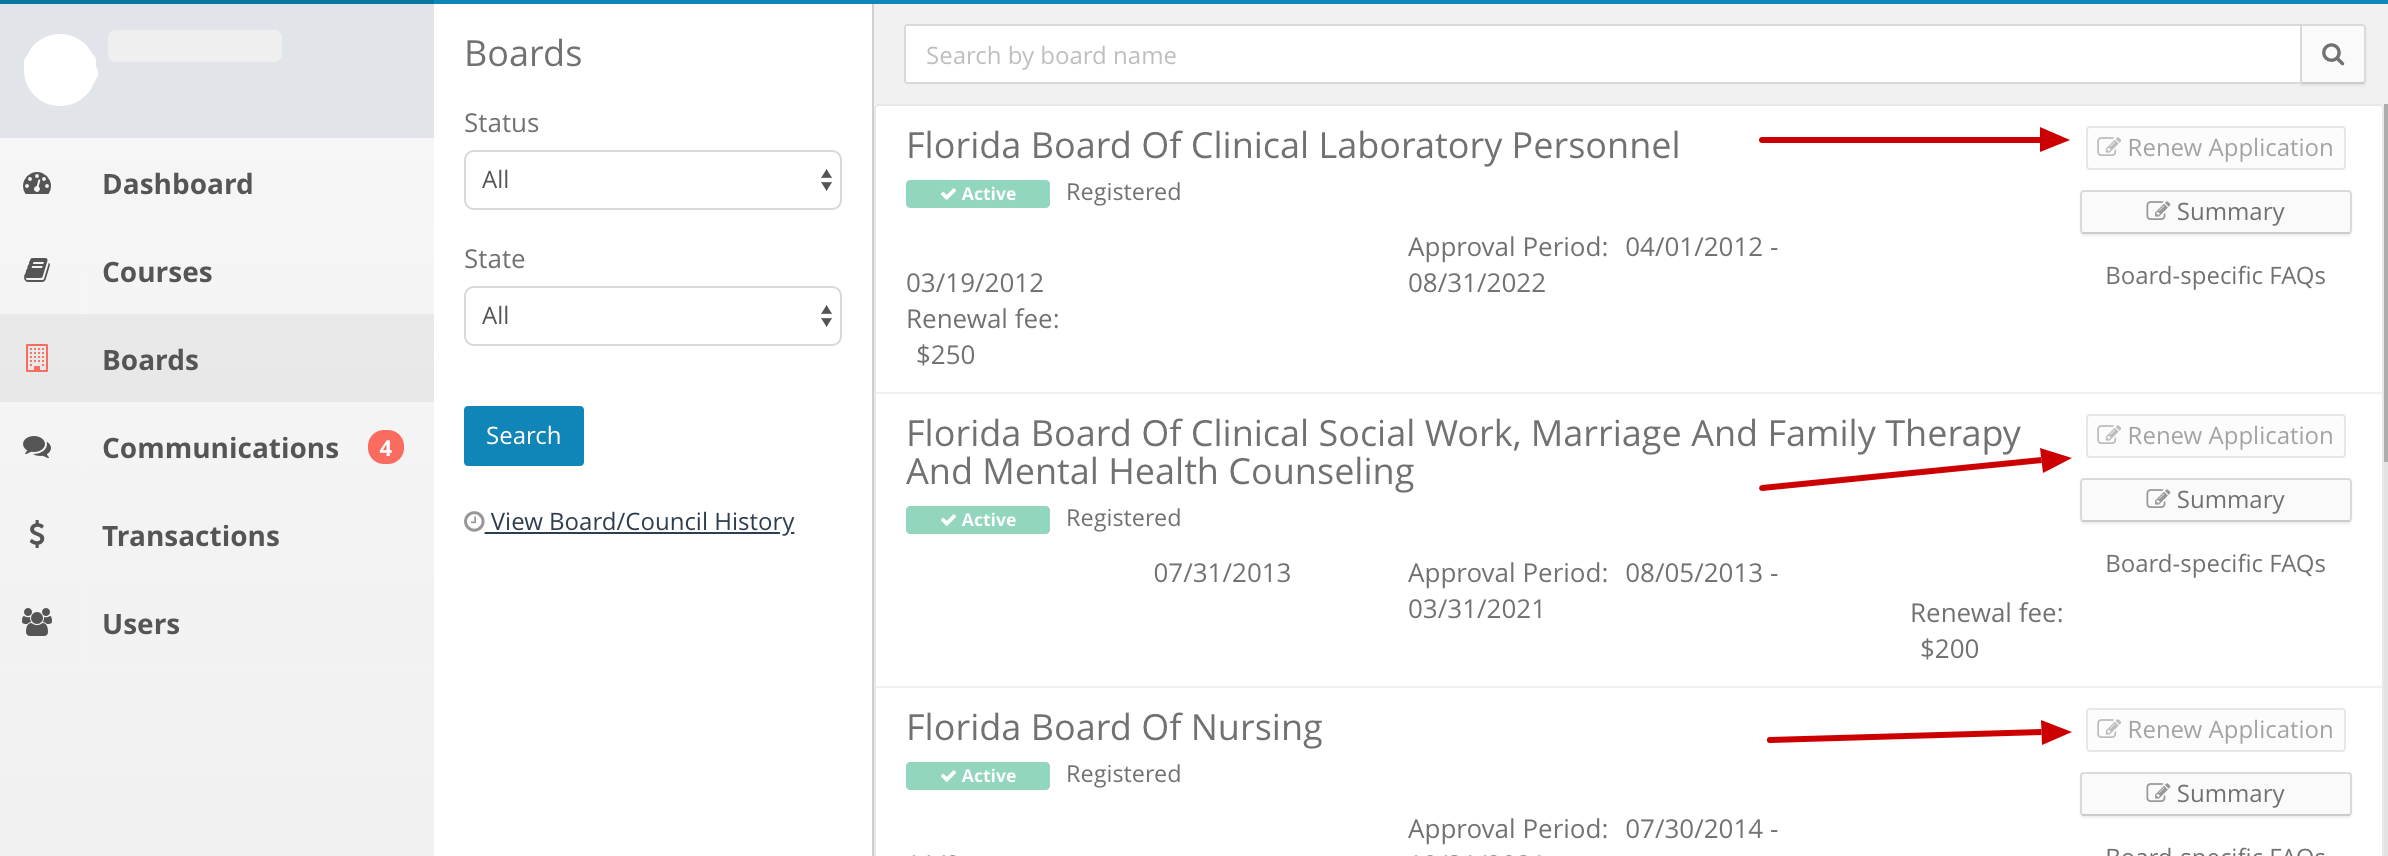 Screenshot of a provider account displaying the list of approving Boards. Arrows point to the Renew Application button next to each applicable board.